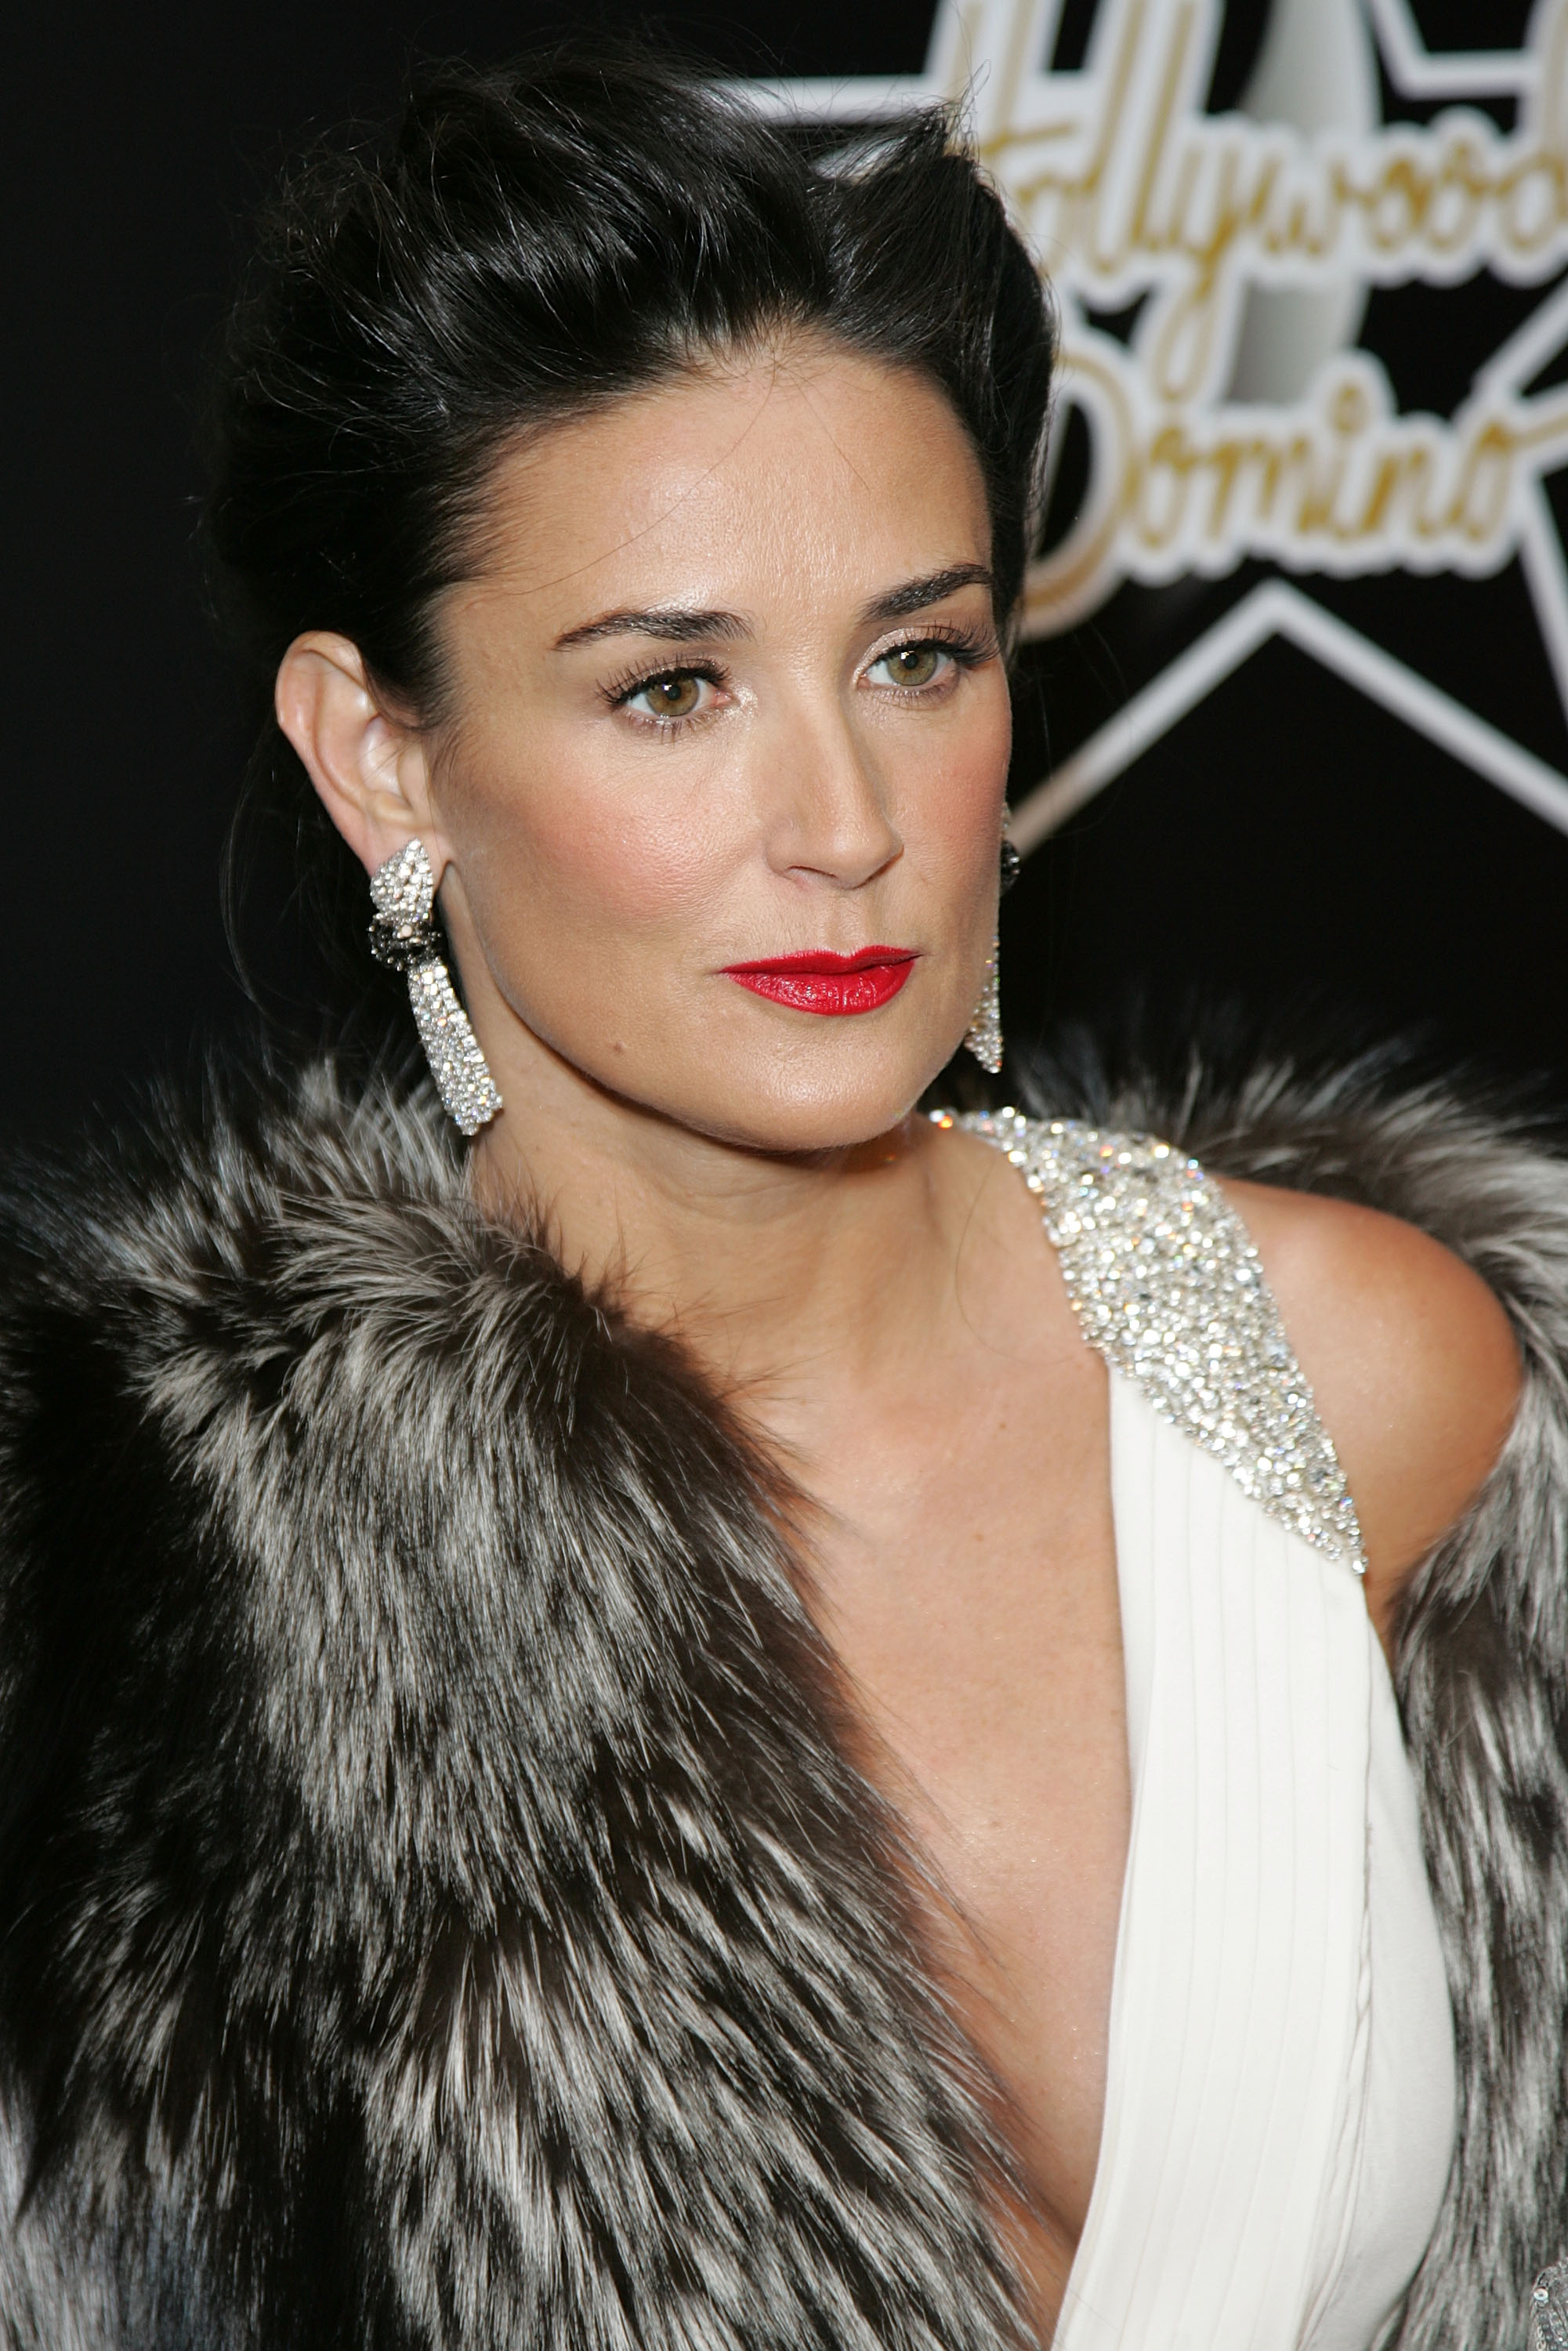 http://www.internetcelebrity.org/albums/wpw-20080227/81732_demi_moore_d6_122_22lo_(4).jpg